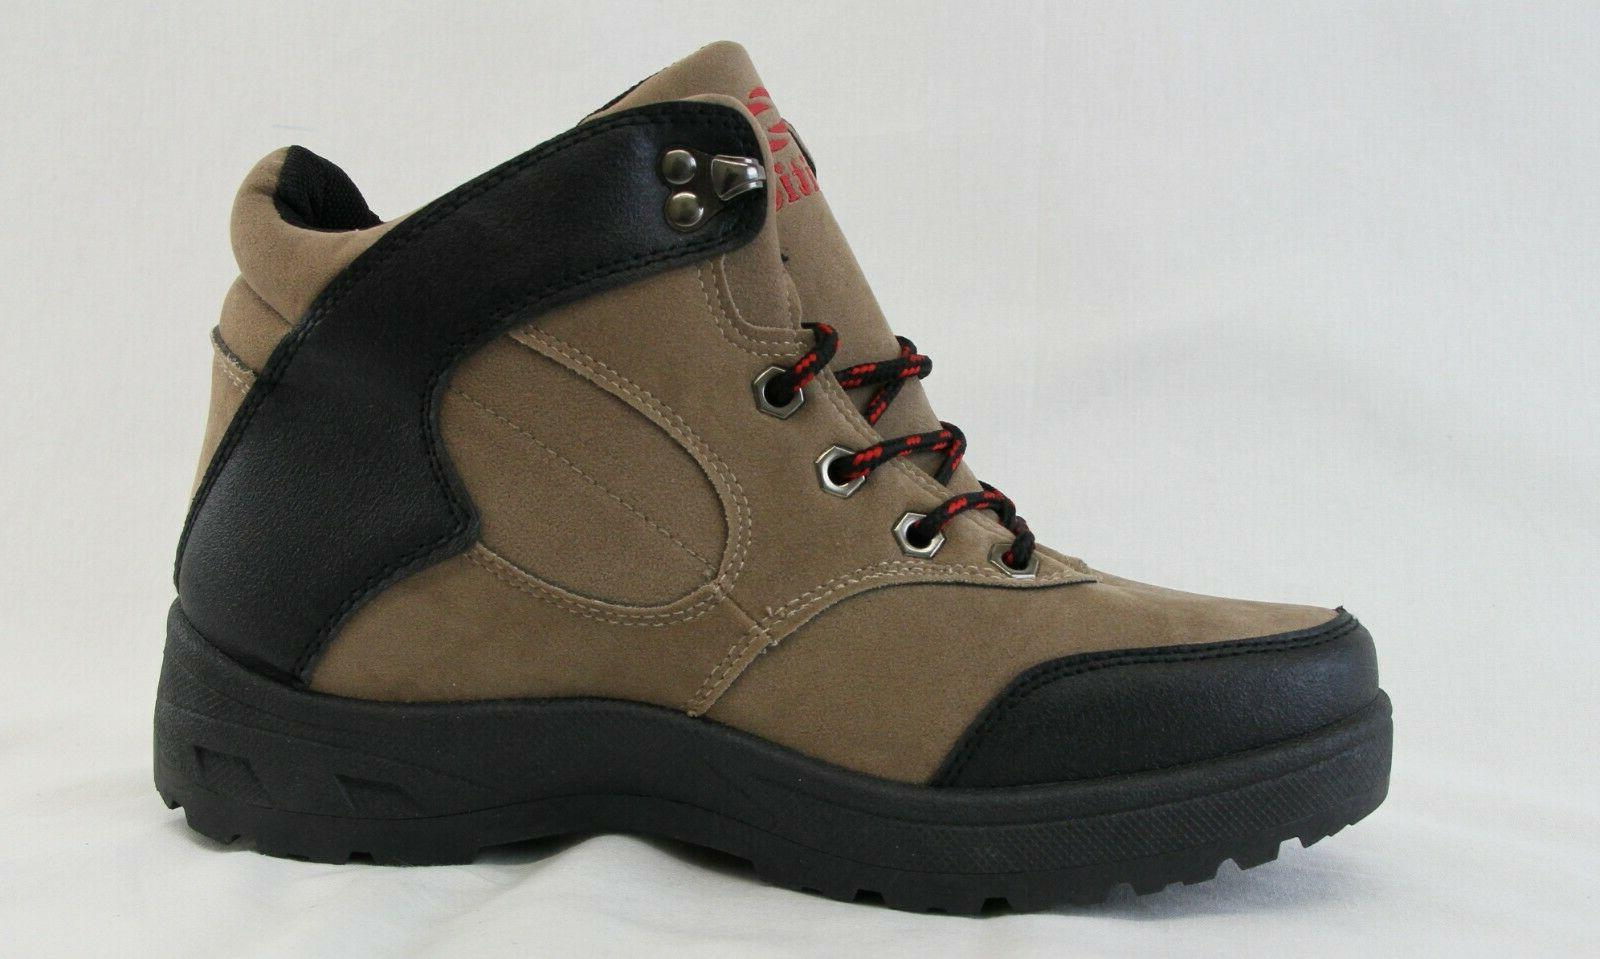 Men Up Boots Khaki Black Lightweight Working Shoes